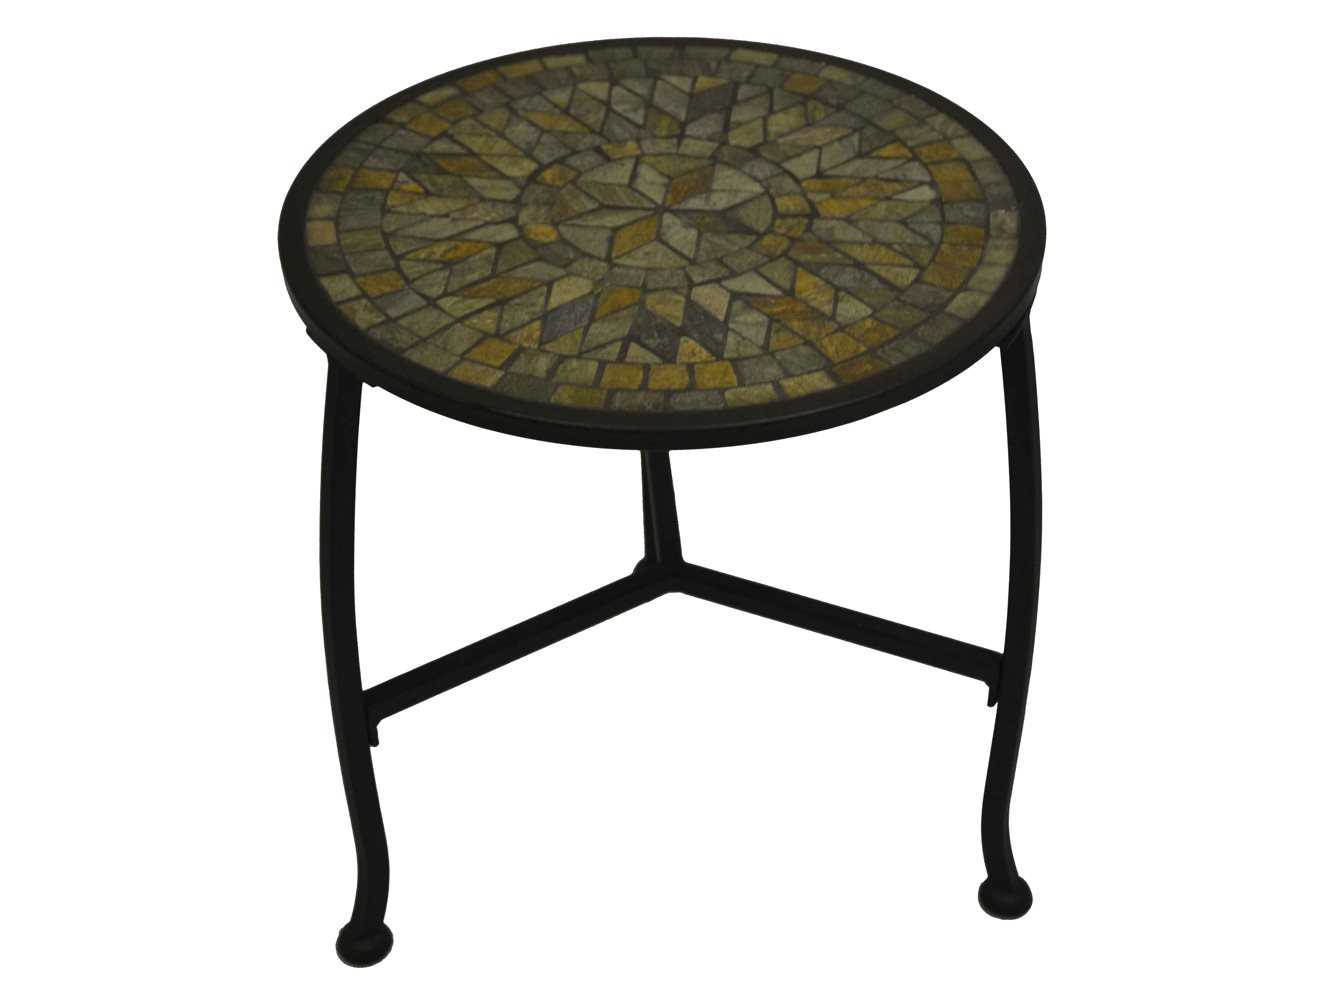 paragon casual aspen wrought iron round single tier elephant tiered metal accent table tables tall thin lamps outdoor dining set razer ouroboros gaming mouse free coffee kmart